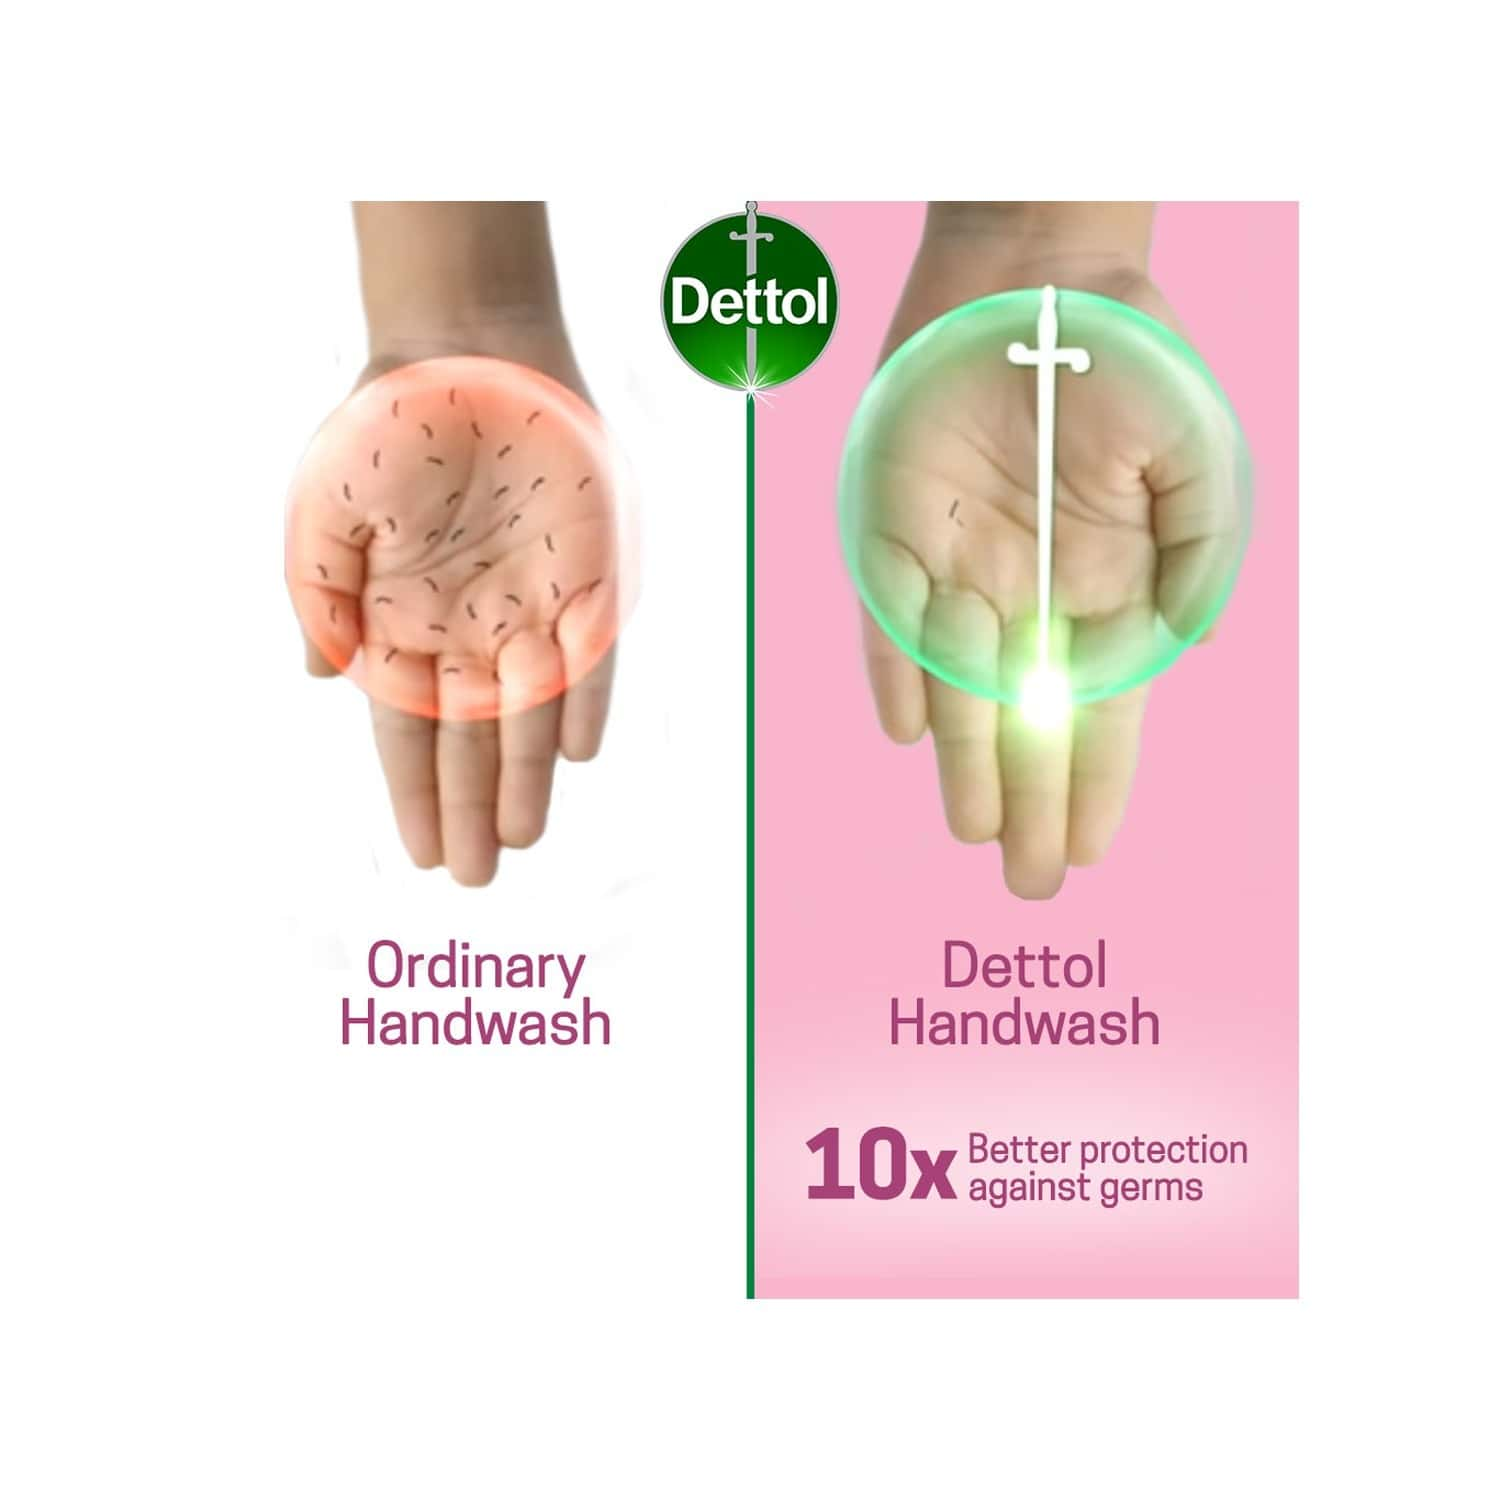 Dettol Skincare Germ Protection Handwash Liquid Soap Refill - 750 Ml, Buy1get1